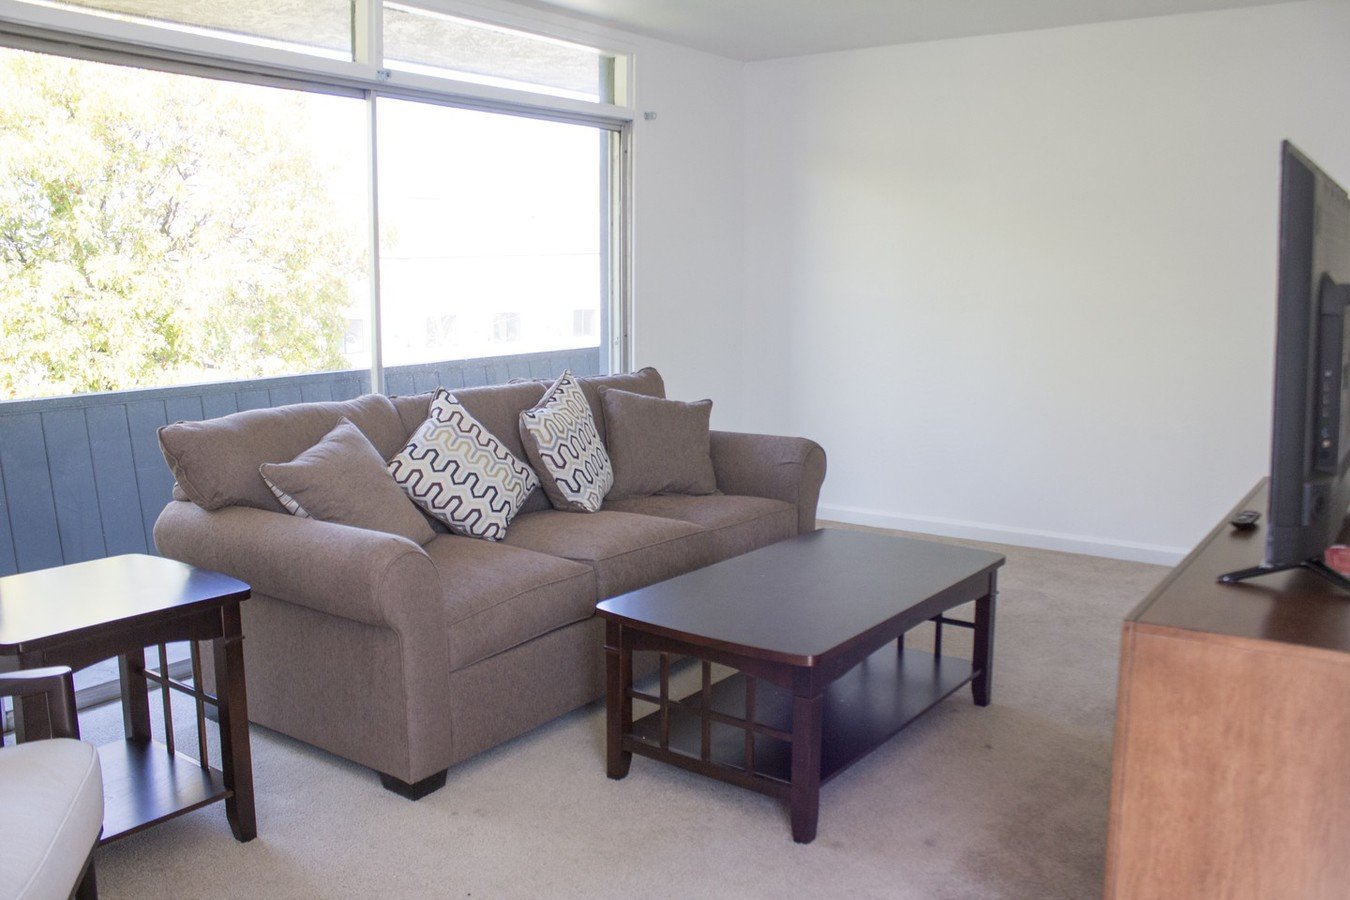 1 Bedroom 1 Bathroom Apartment for rent at 1407 Eighth St in Berkeley, CA